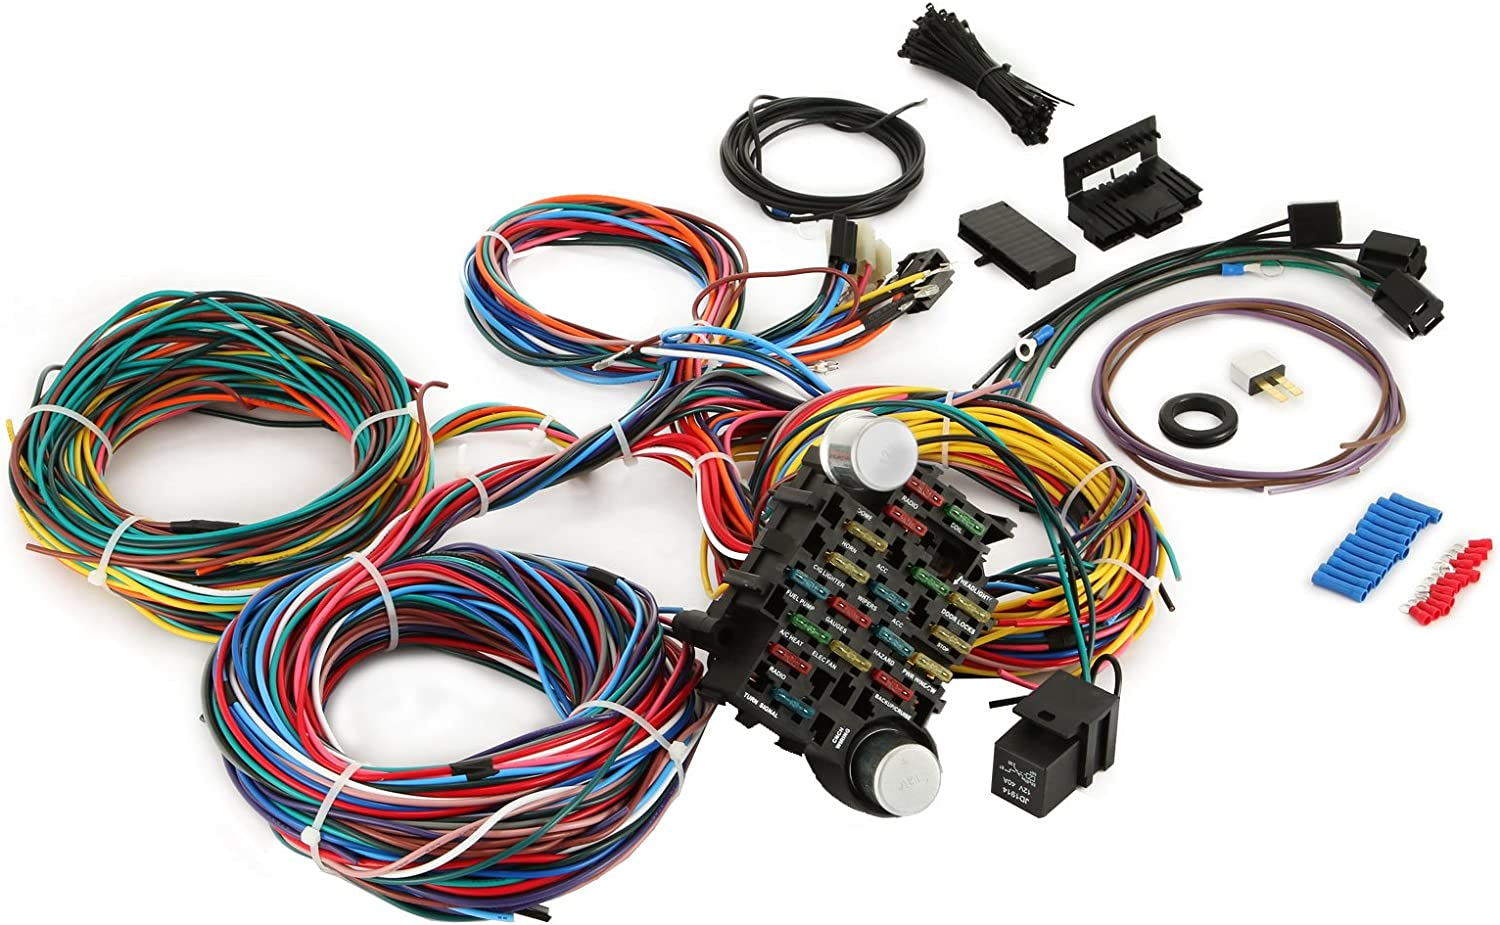 Car Wiring Harness - daily update wiring diagram on car stereo cover, car stereo with ipod integration, car stereo sleeve, car stereo alternators, car wiring supplies, leather dog harness, 95 sc400 stereo harness, car fuse, car speaker,